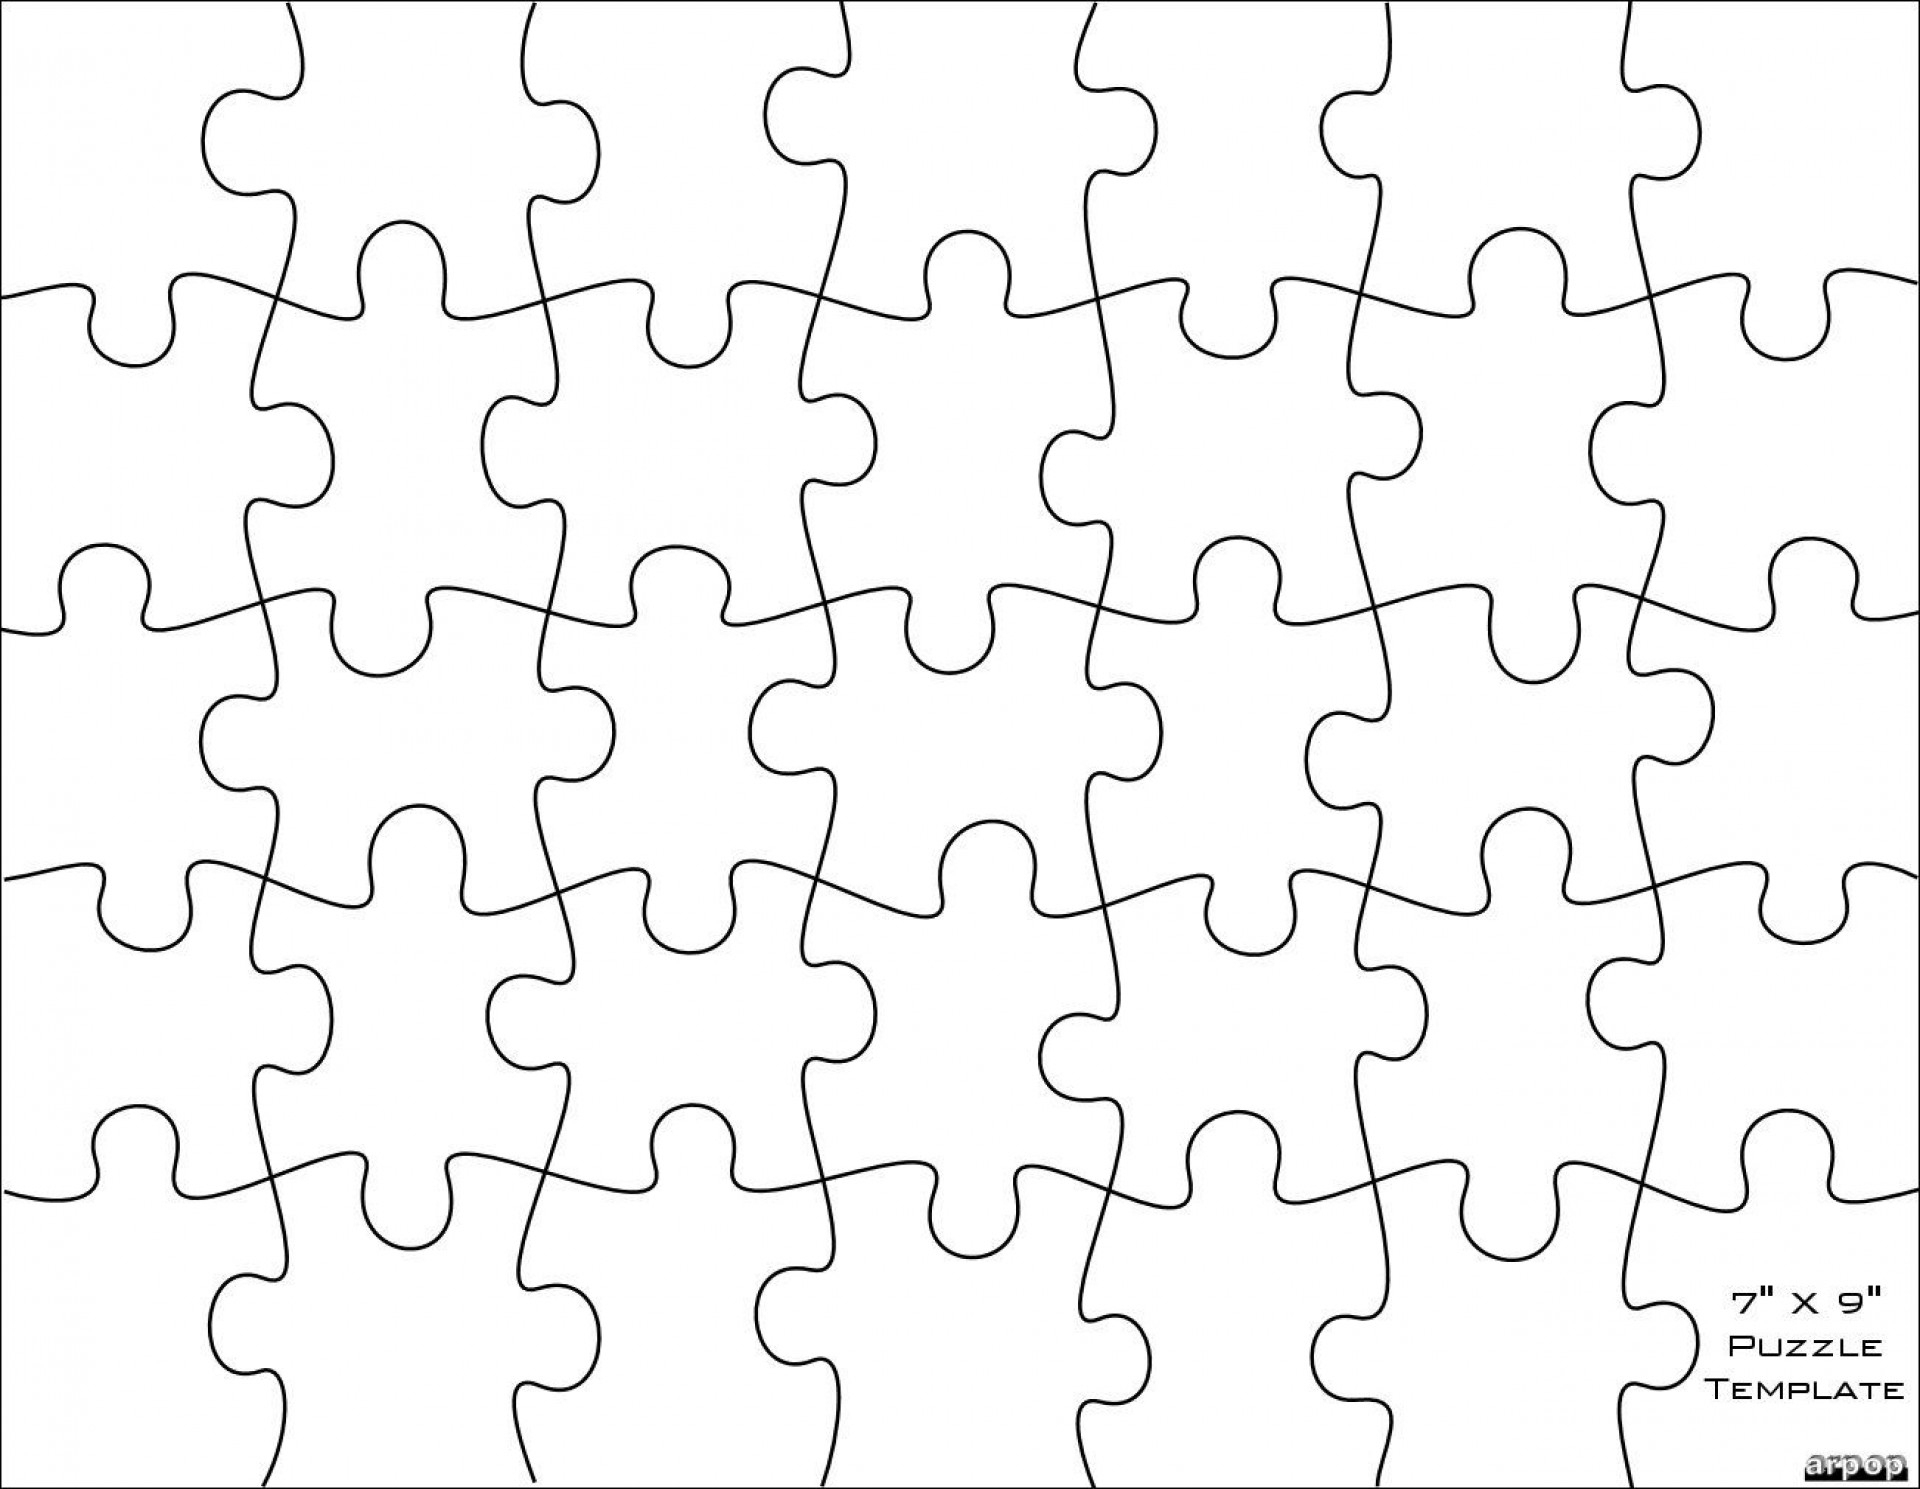 006 Jigsaw Puzzle Blank Template Twenty Pieces Simple Jig Saw - Printable Jigsaw Puzzle Maker Download